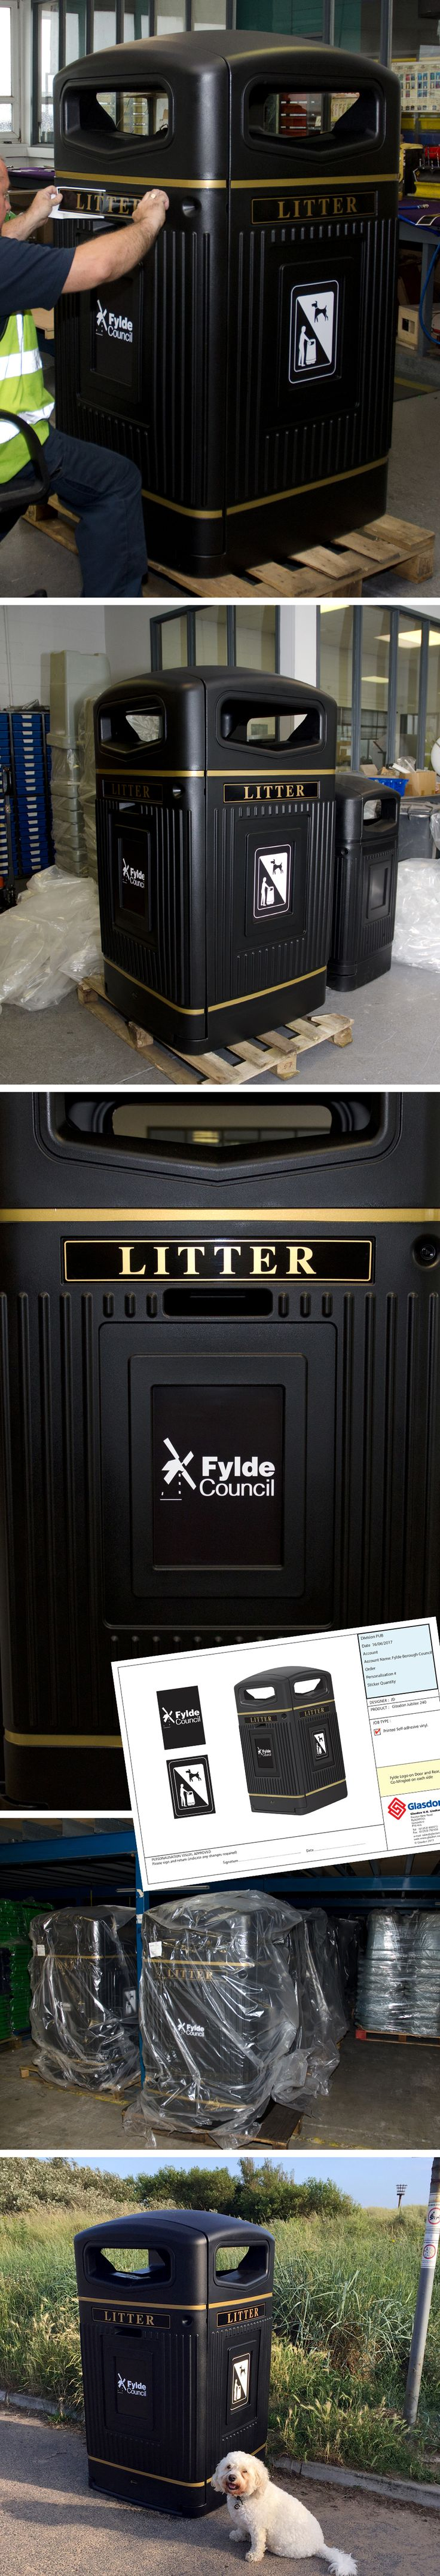 The Glasdon Jubilee™ 240 wheelie bin housing personalised for Fylde Council. This bin houses a standard 240 litre wheelie bin or 300 litre sack (with sack retention system) to collect more litter/waste which will reduce collection costs.